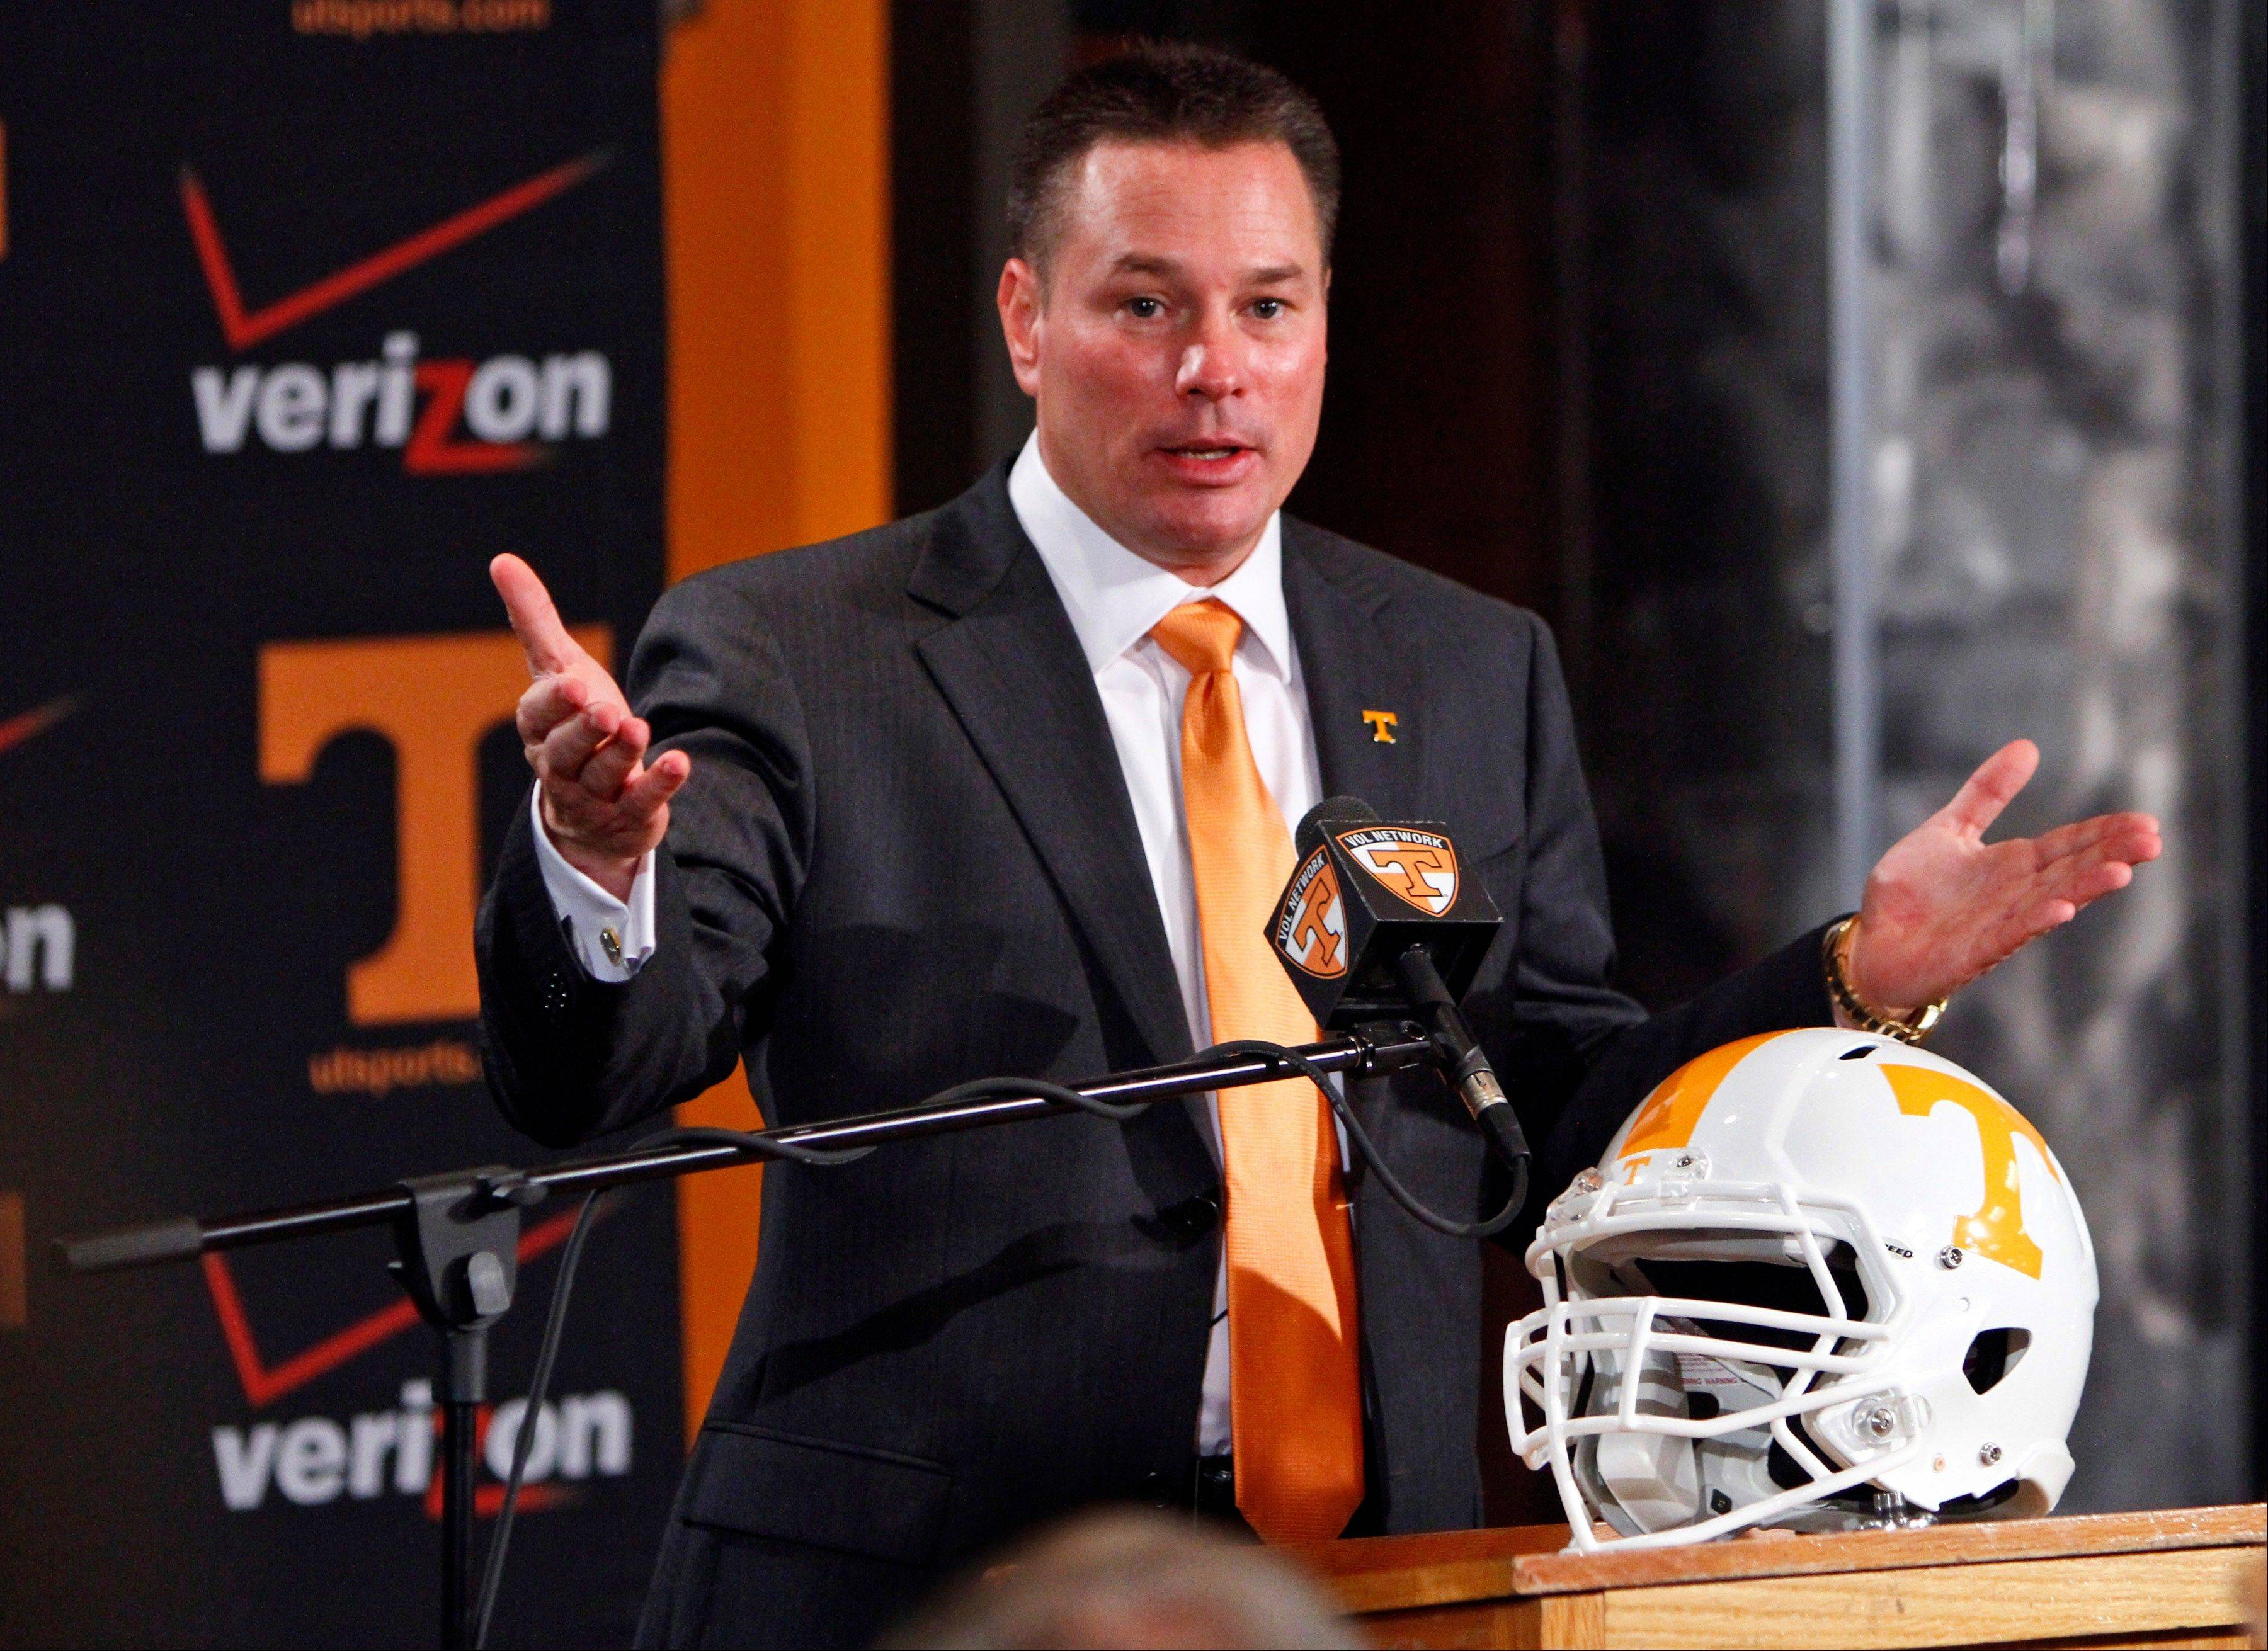 Butch Jones, Tennessee�s new head football coach, speaks Friday during a news conference in Knoxville, Tenn. The Vols� introduced Jones on Friday as its successor to Derek Dooley, who was fired Nov. 18 after going 15-21 in three seasons.